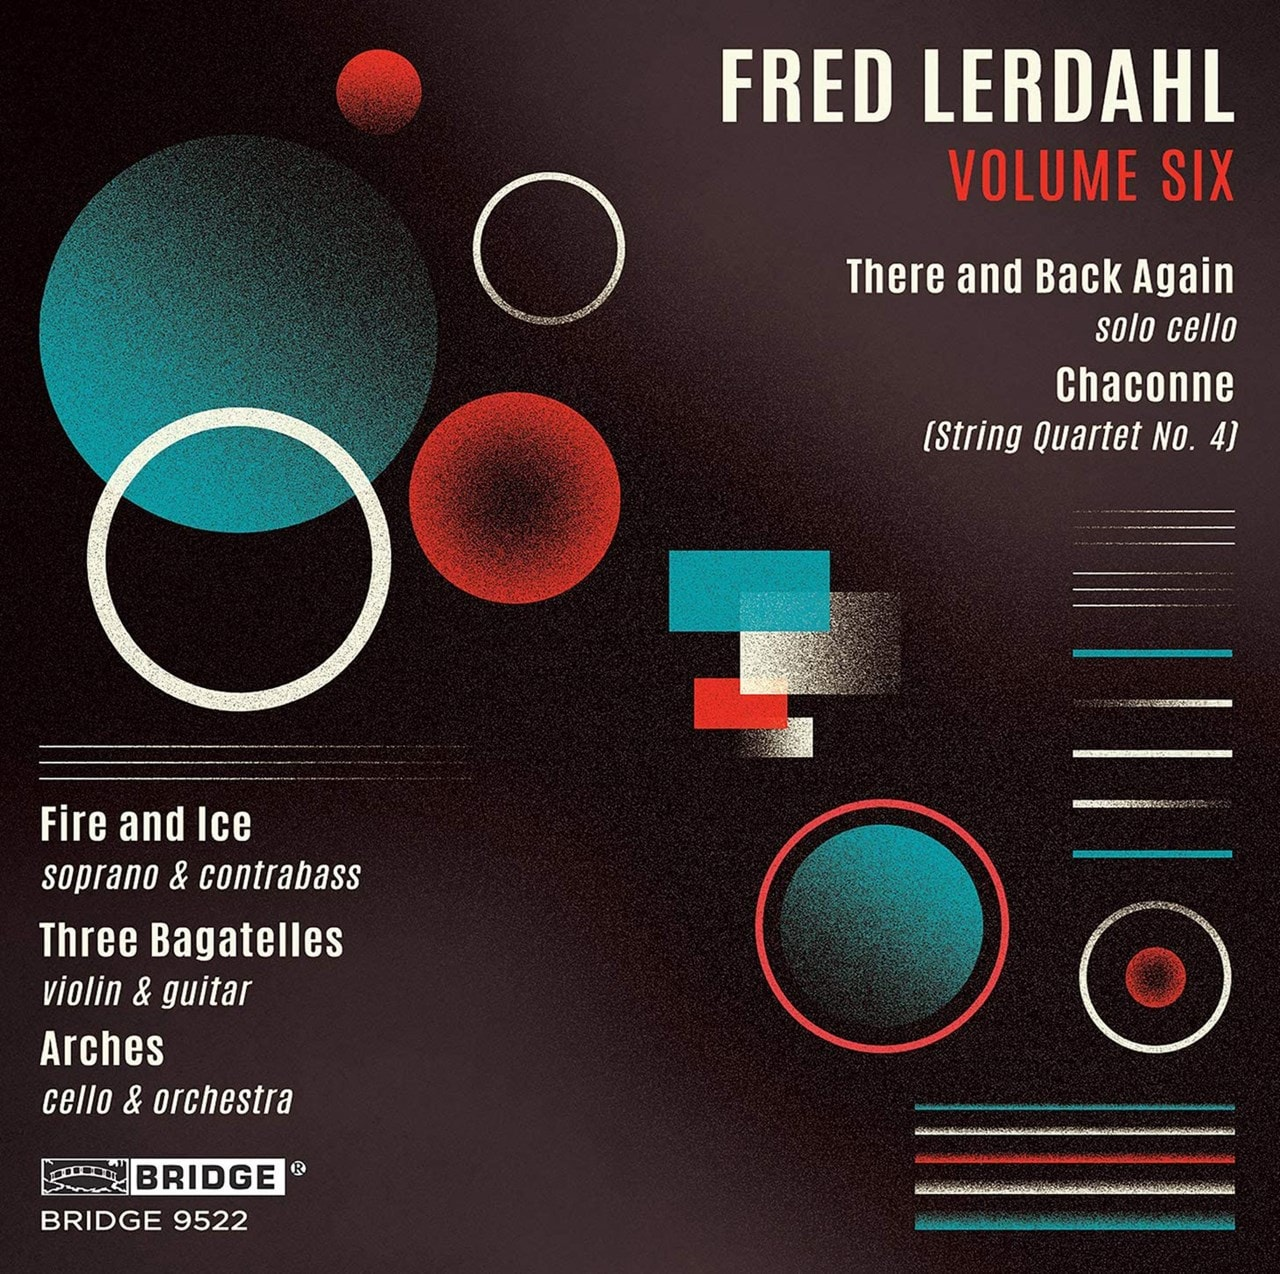 Fred Lerdahl: There and Back Again/Chaconne - Volume 6 - 1